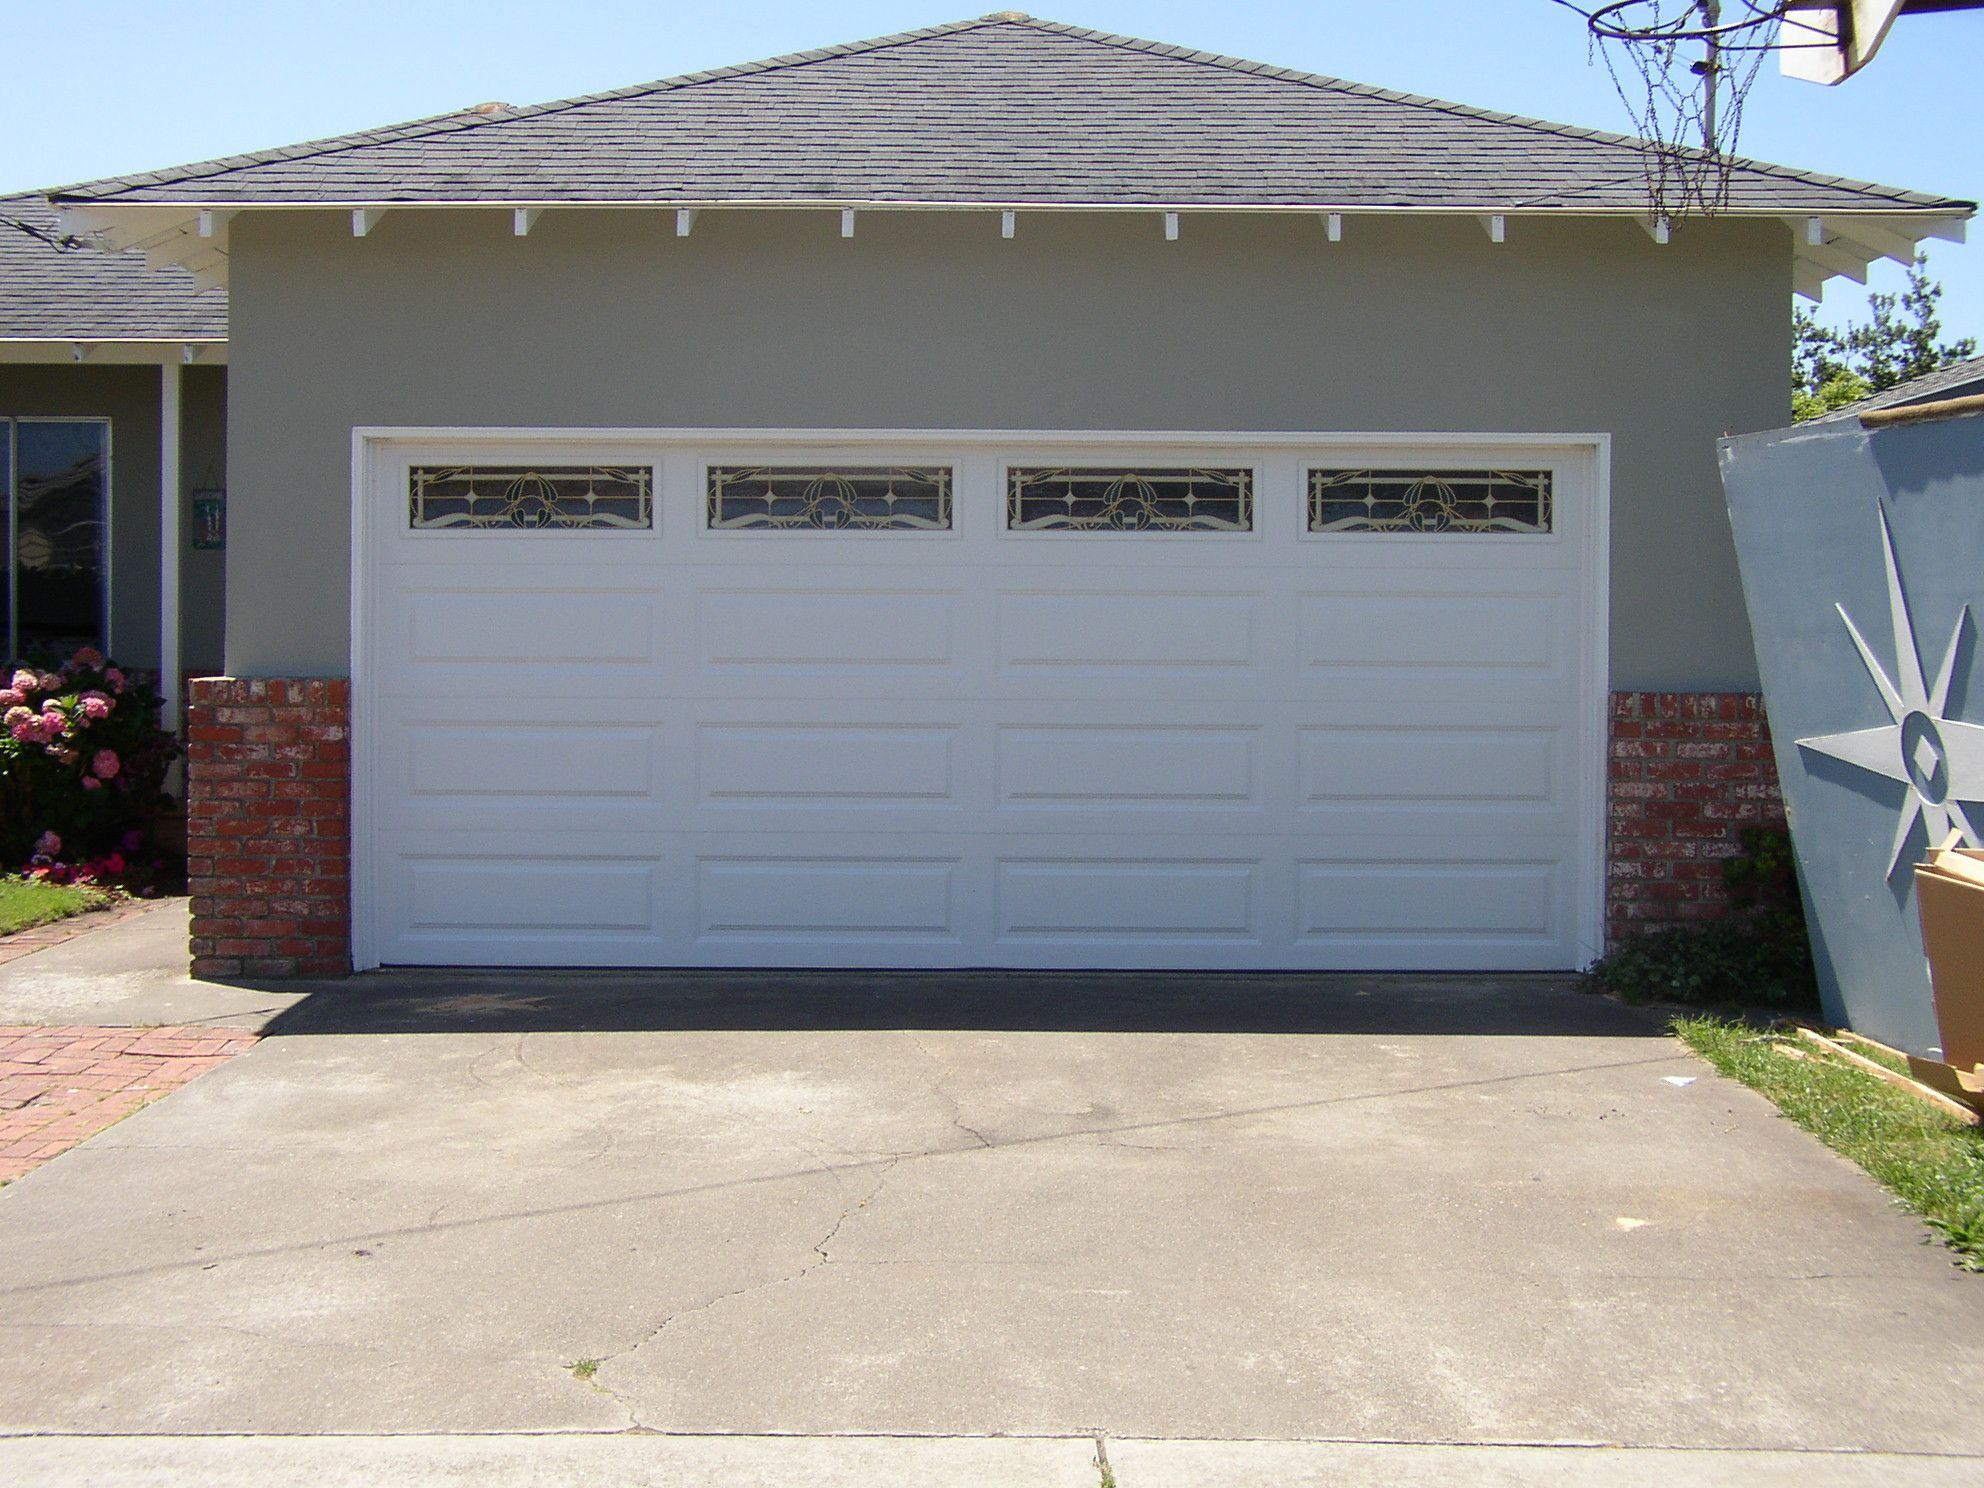 Repair tulsa ok tulsa garage door repair service broken springs - Local Garage Door Repair Installation Business Providing Garage Door Repair Openers Torsion